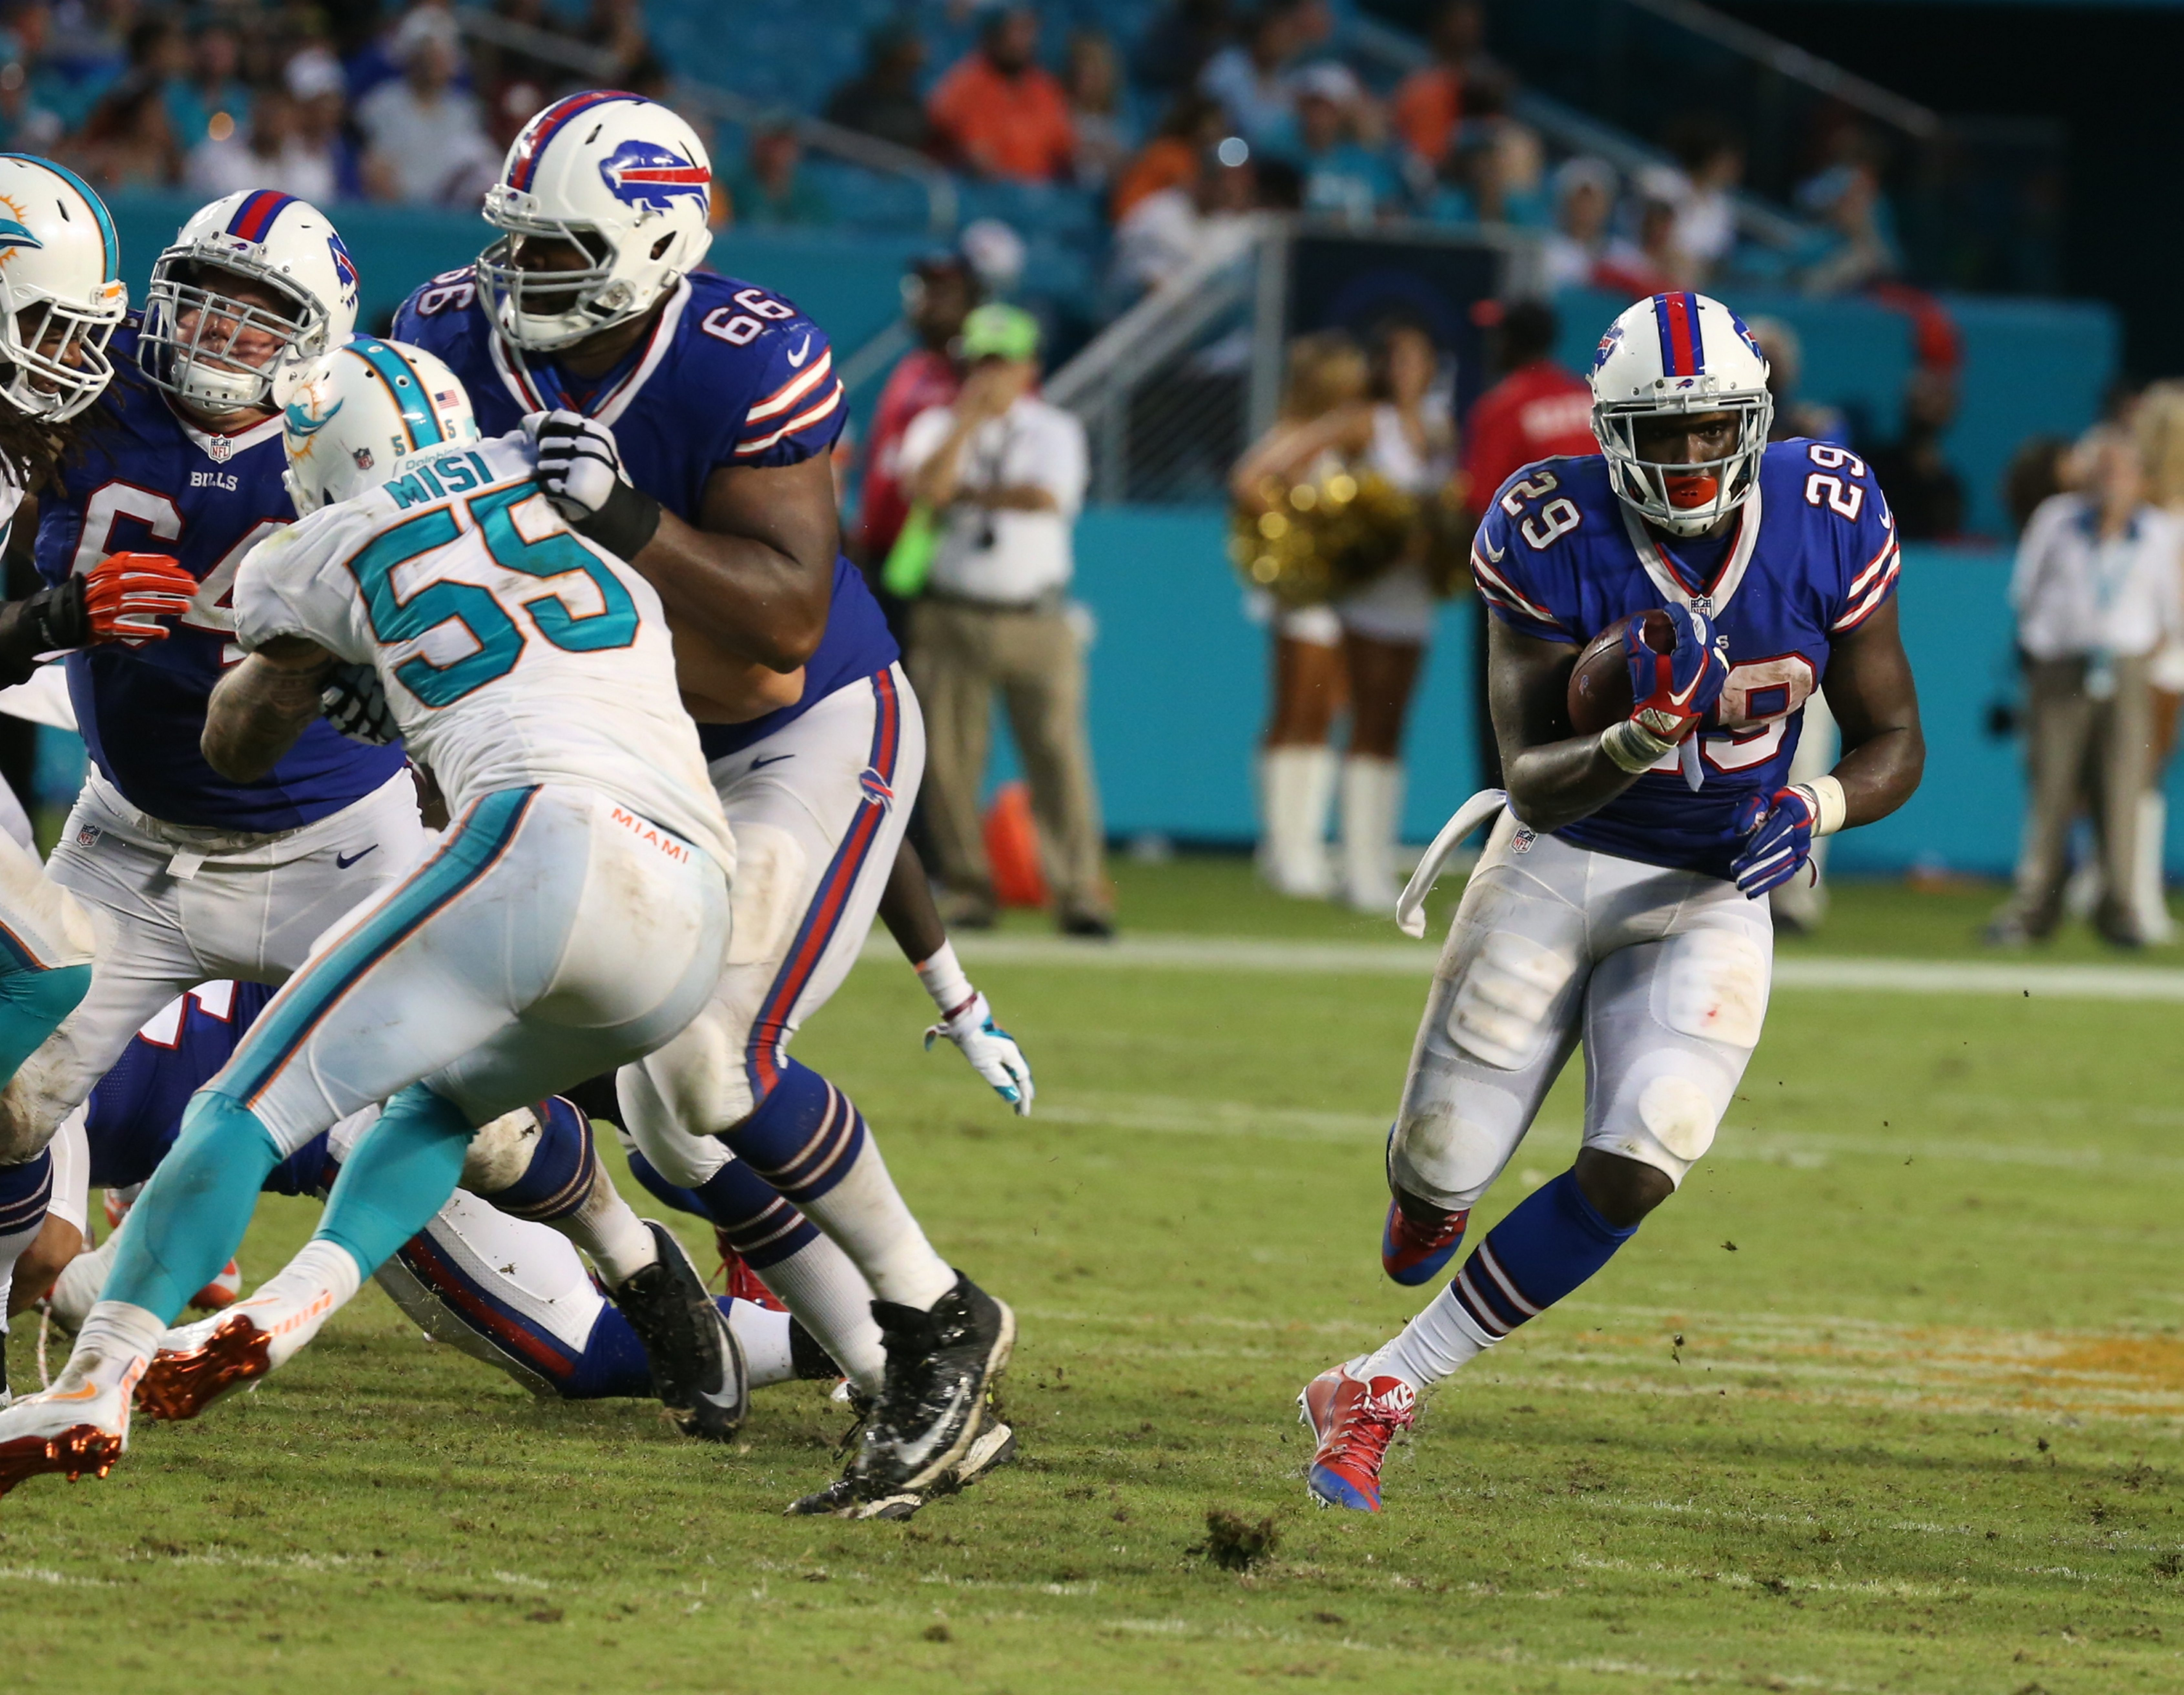 Karlos Williams, left, ran for 110 yards against Miami on Sunday, while cornerback Ronald Darby, right, had one of the three Buffalo interceptions in the first half against the Dolphins.